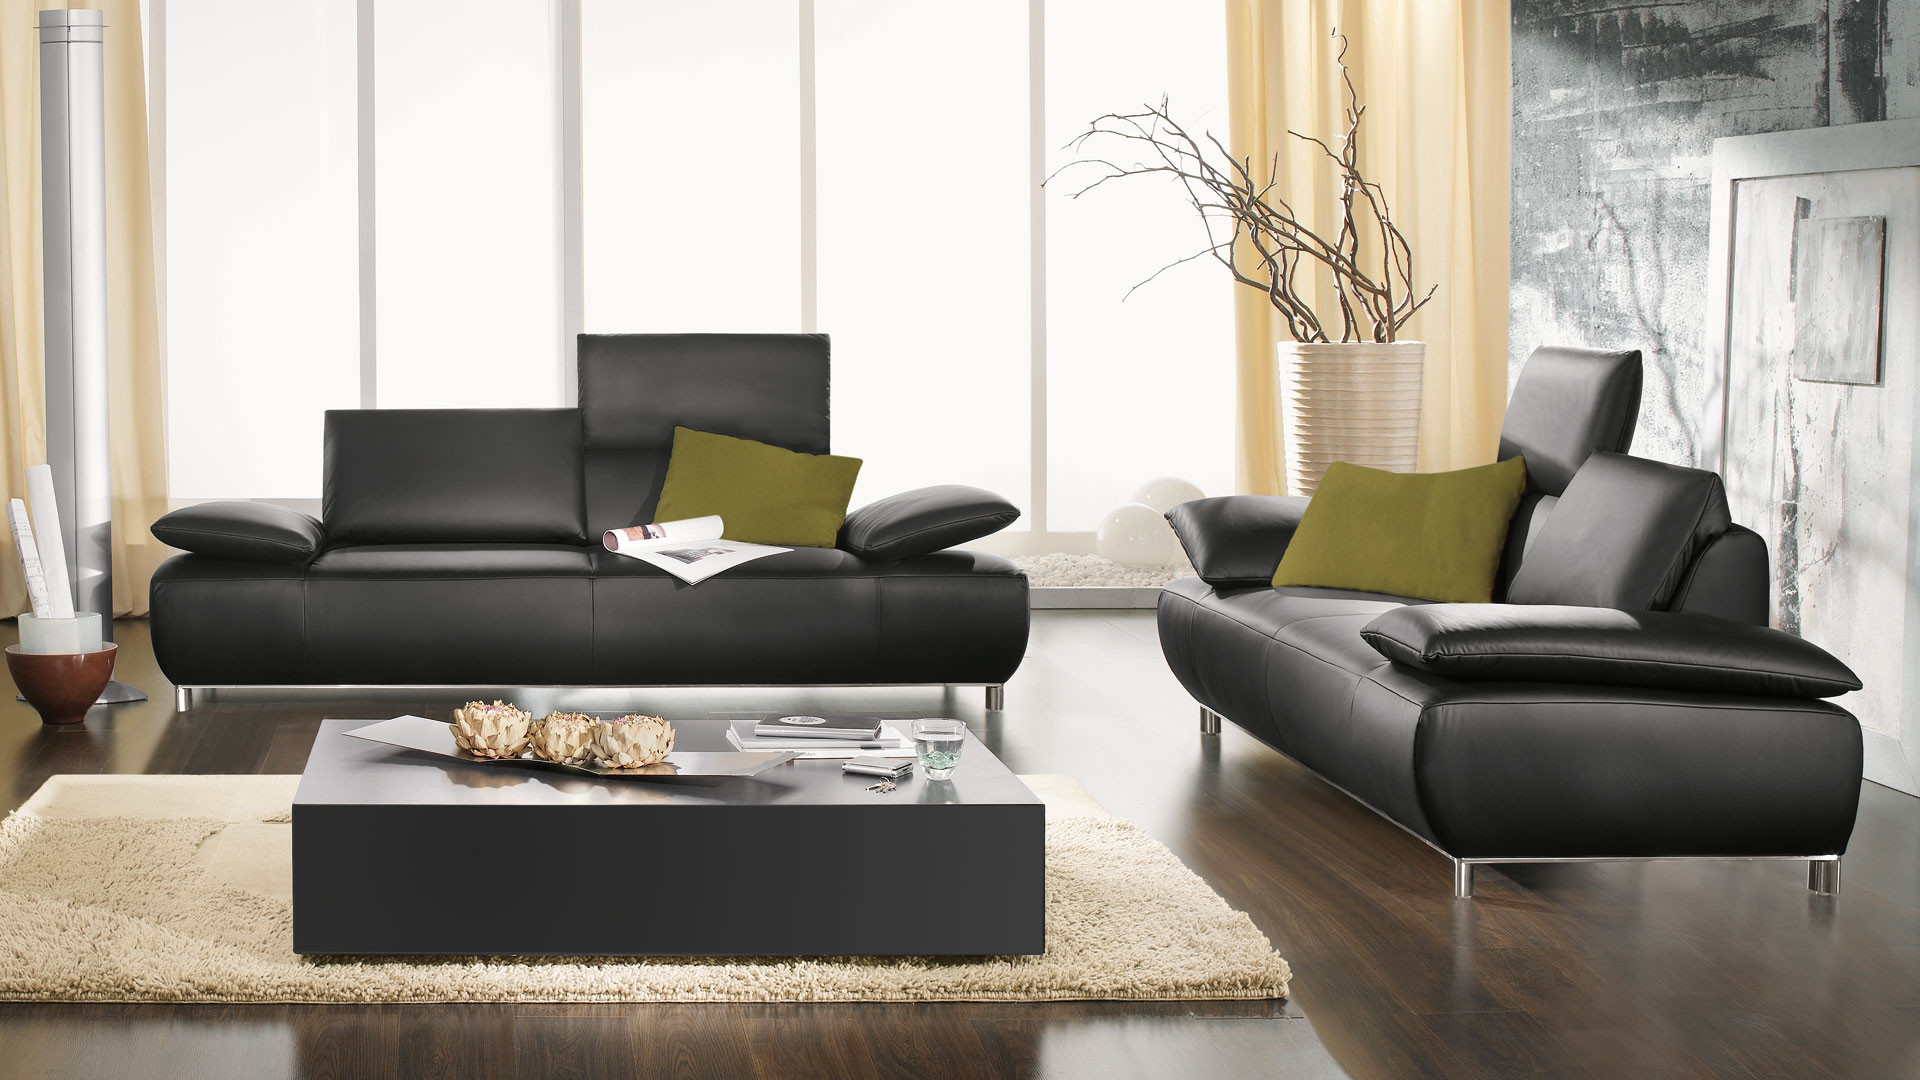 koinor romero romero sofa koinor modern sofas miami by the koinor sofas belfast northern. Black Bedroom Furniture Sets. Home Design Ideas